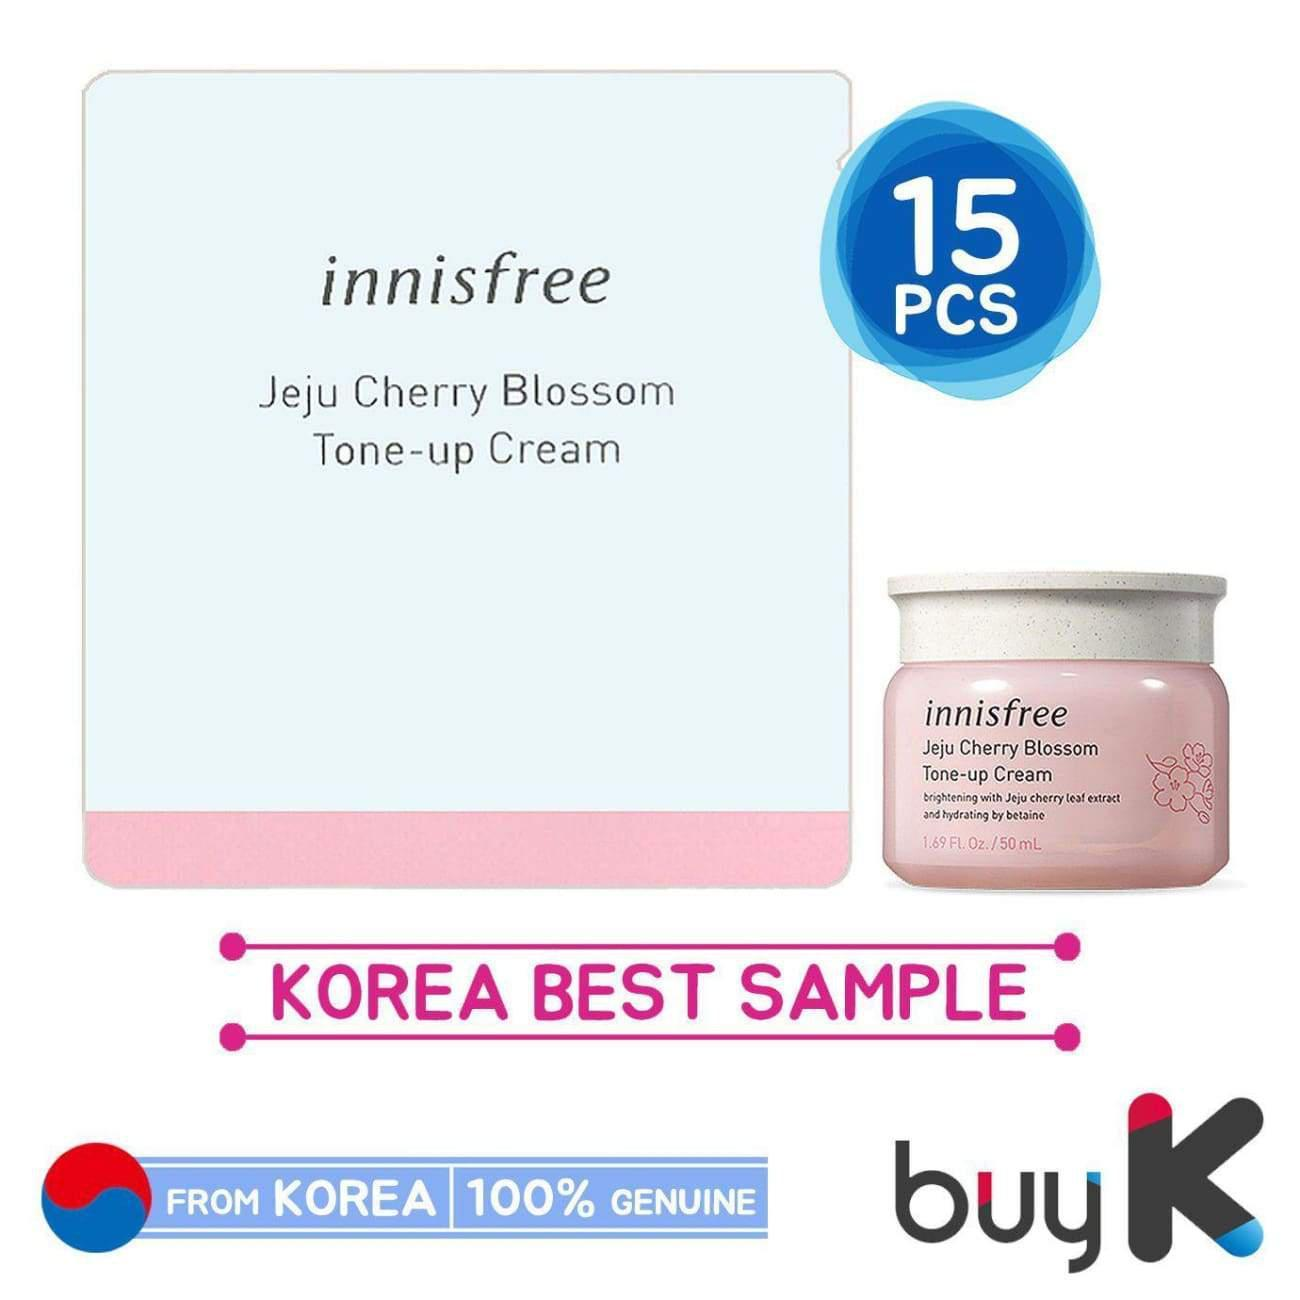 15pcs [INNISFREE] Jeju Cherry Blossom Tone Up Cream 1ml (Sample Sachet)